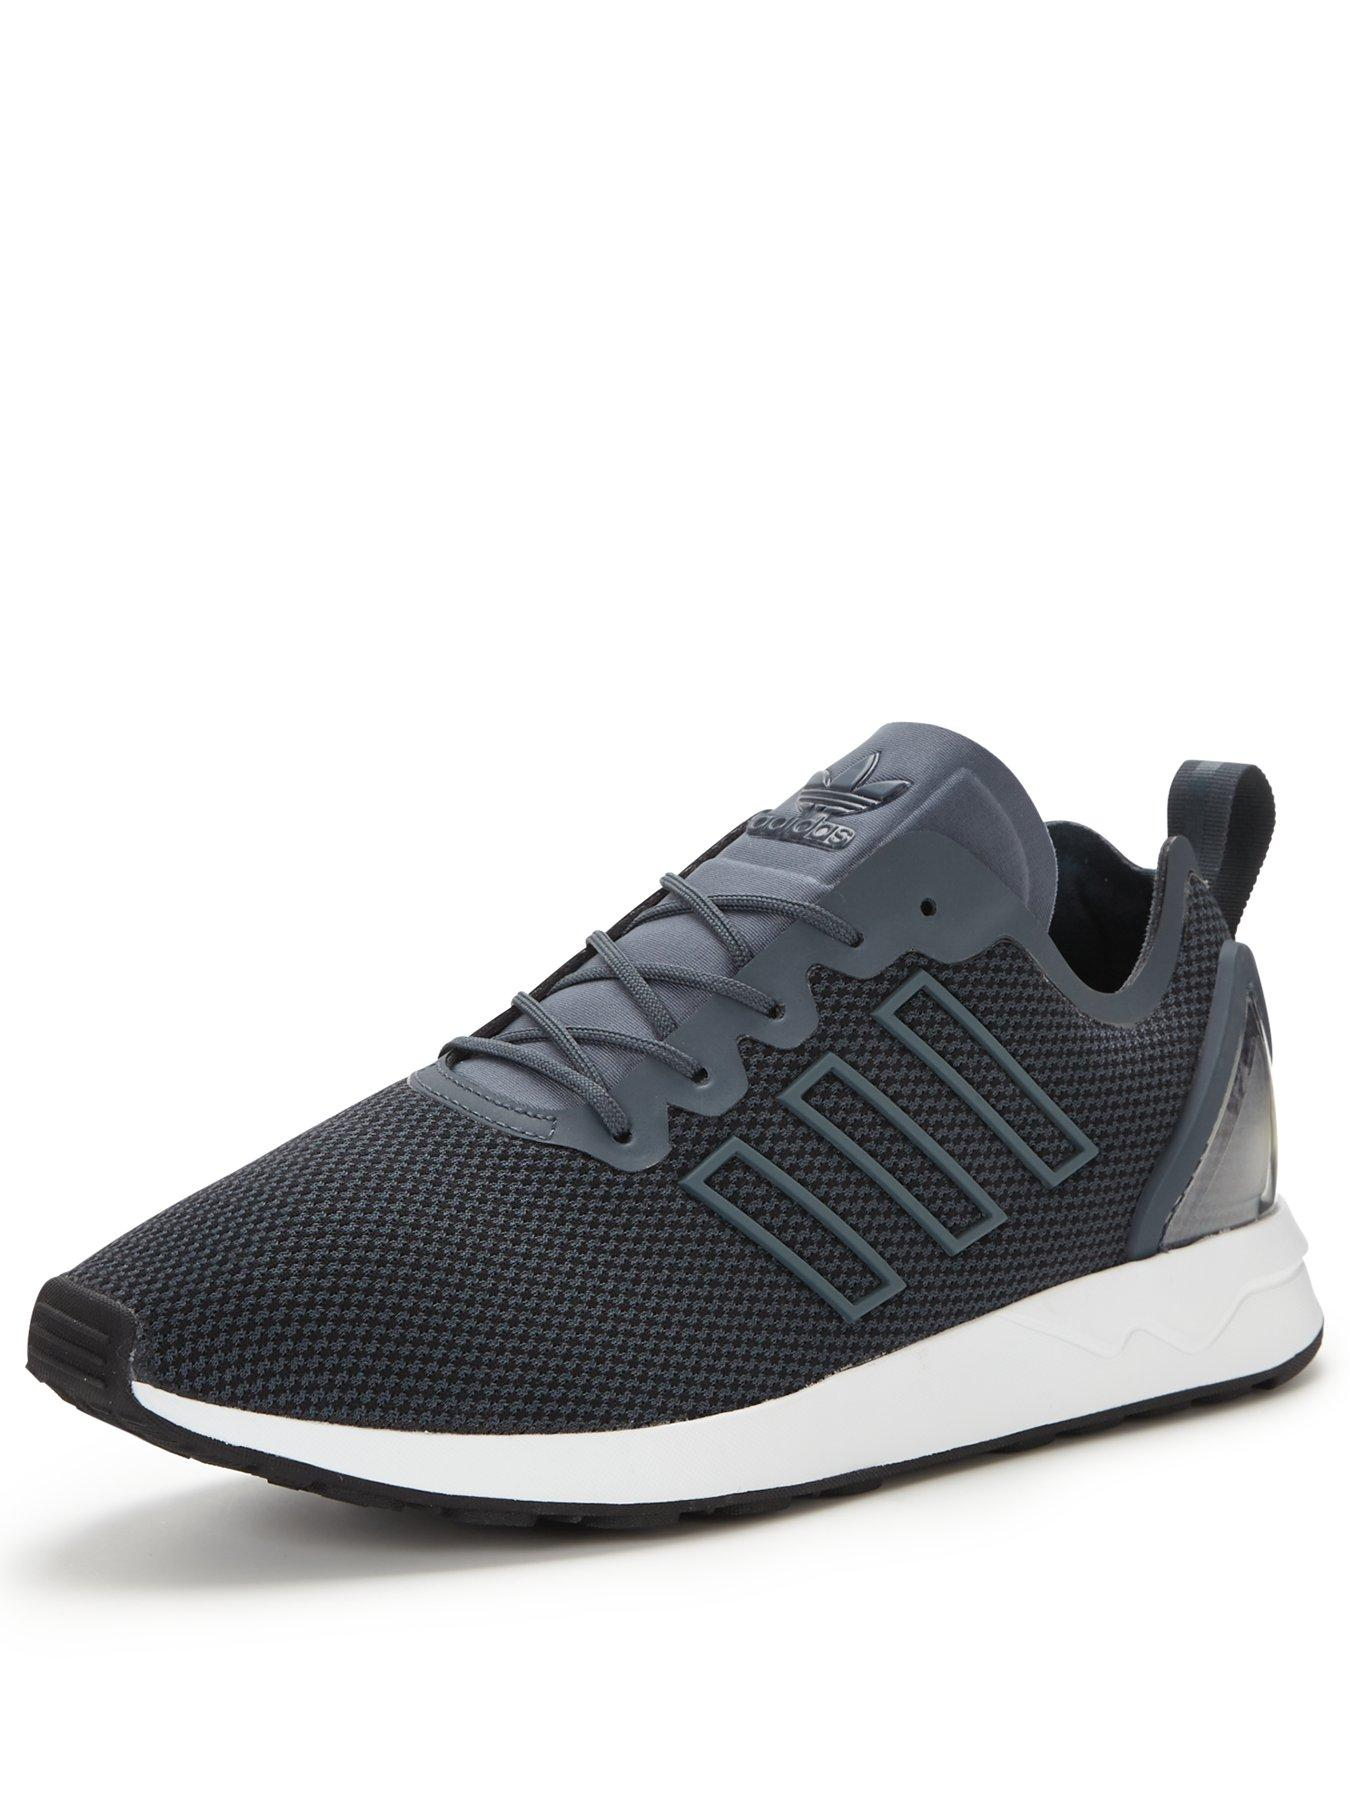 finest selection b6d70 b51f3 Adidas ZX Flux Adidas ZX Flux Online NZ Buy Mens The Iconic